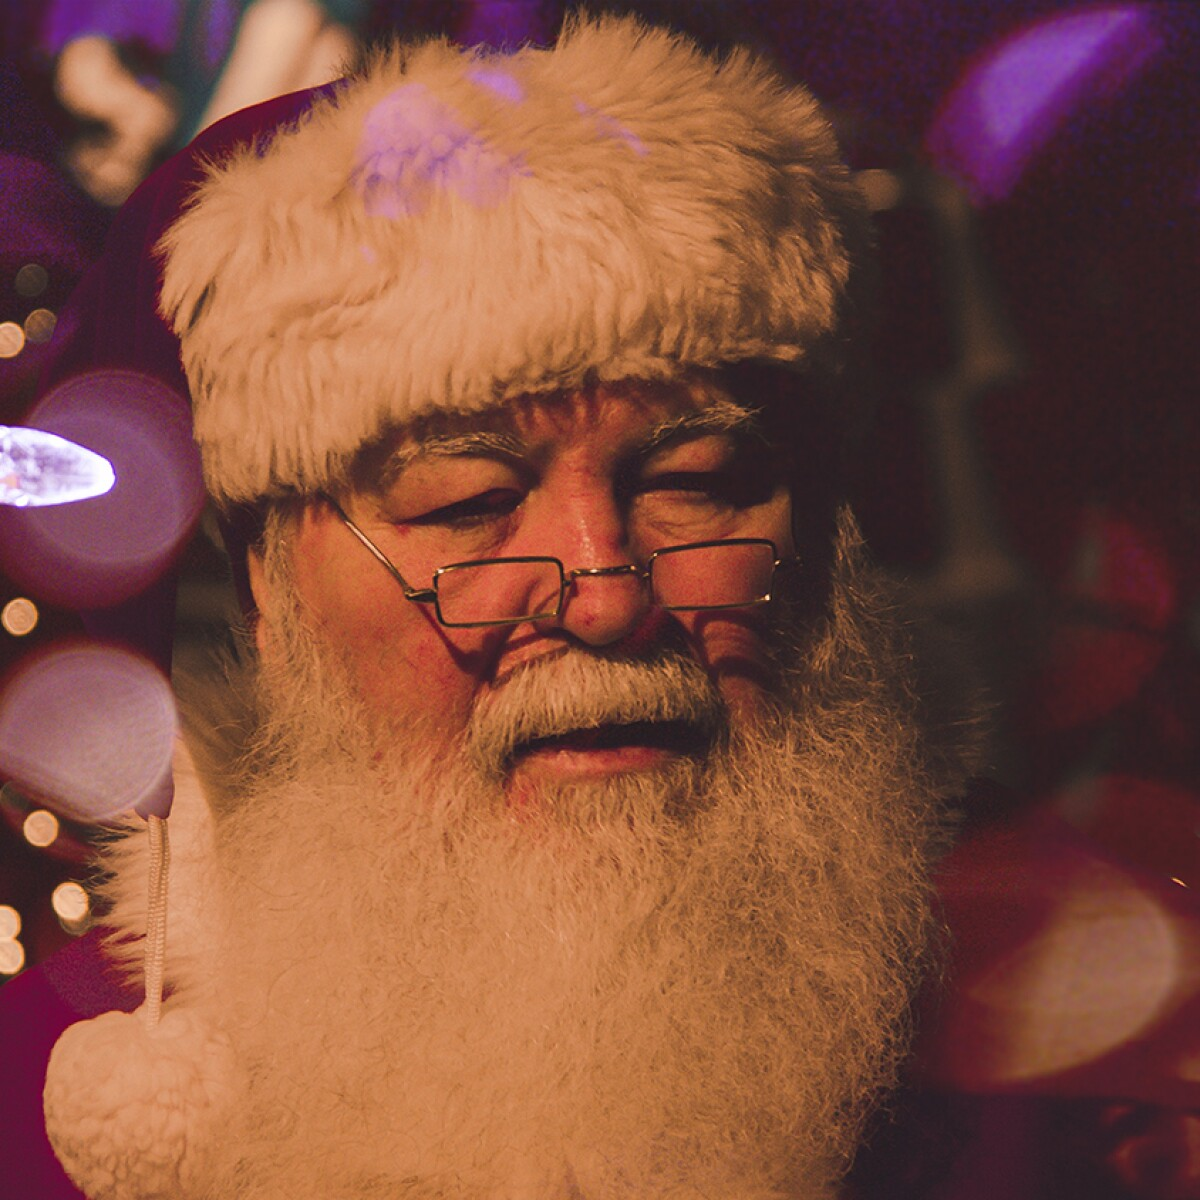 Some people think Santa should be female or gender neutral, study by GraphicSprings